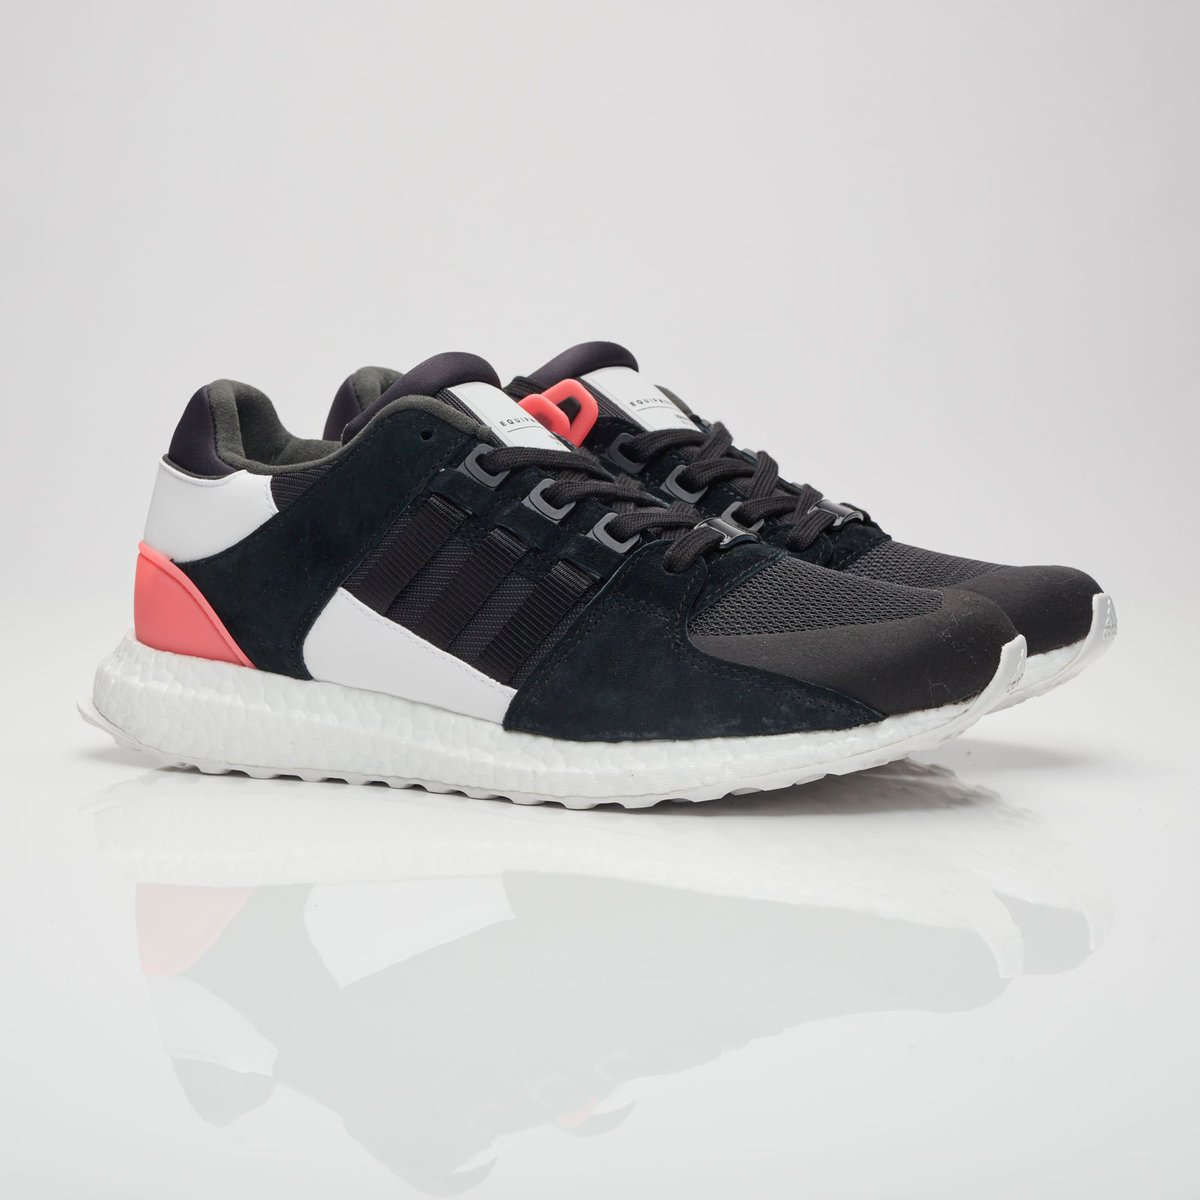 Adidas EQT Support 93 17 Boost White Turbo Red Black